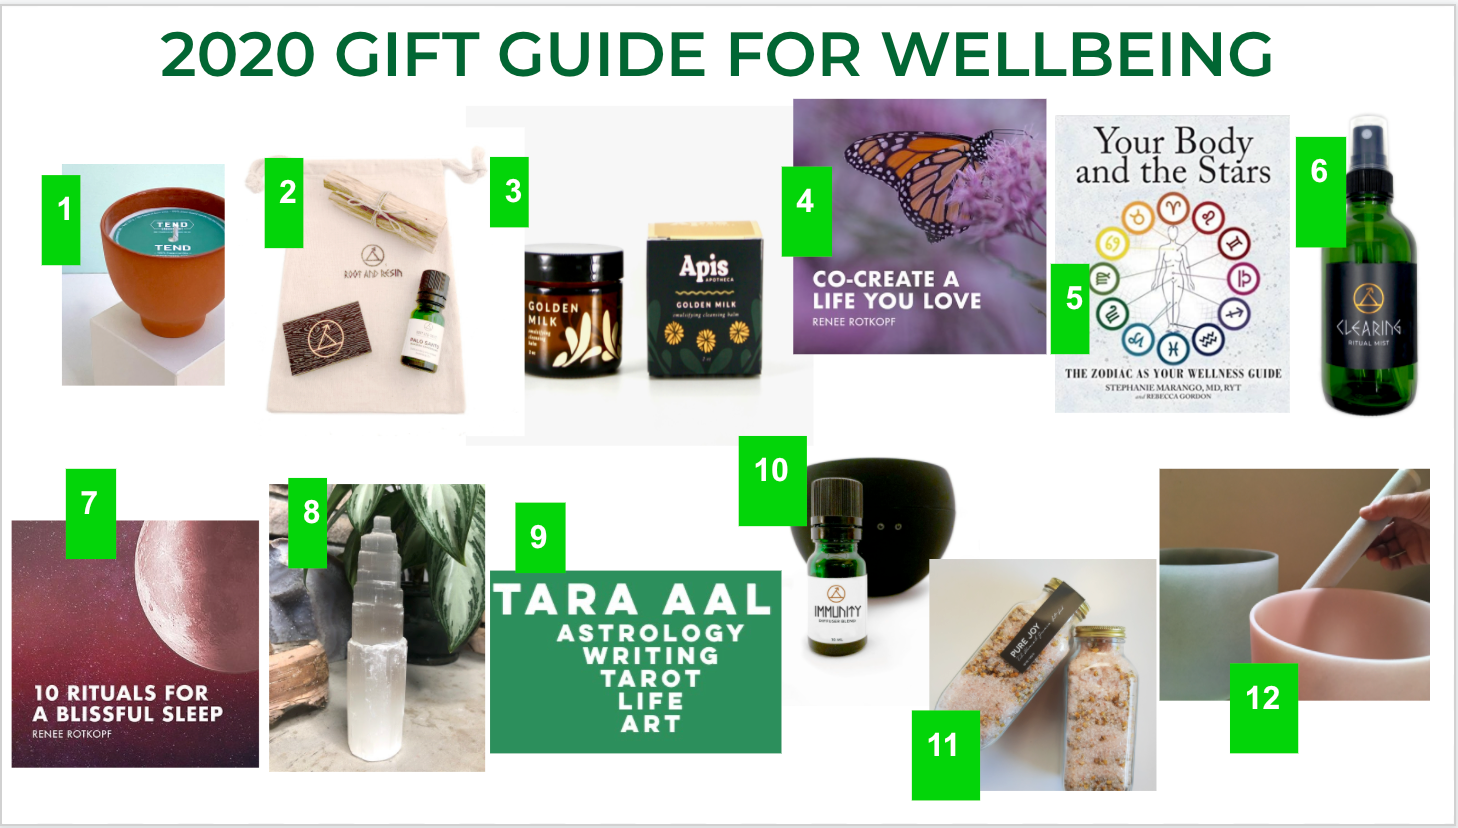 2020 Holiday Gift Guide for Wellbeing in partnership with local artisans